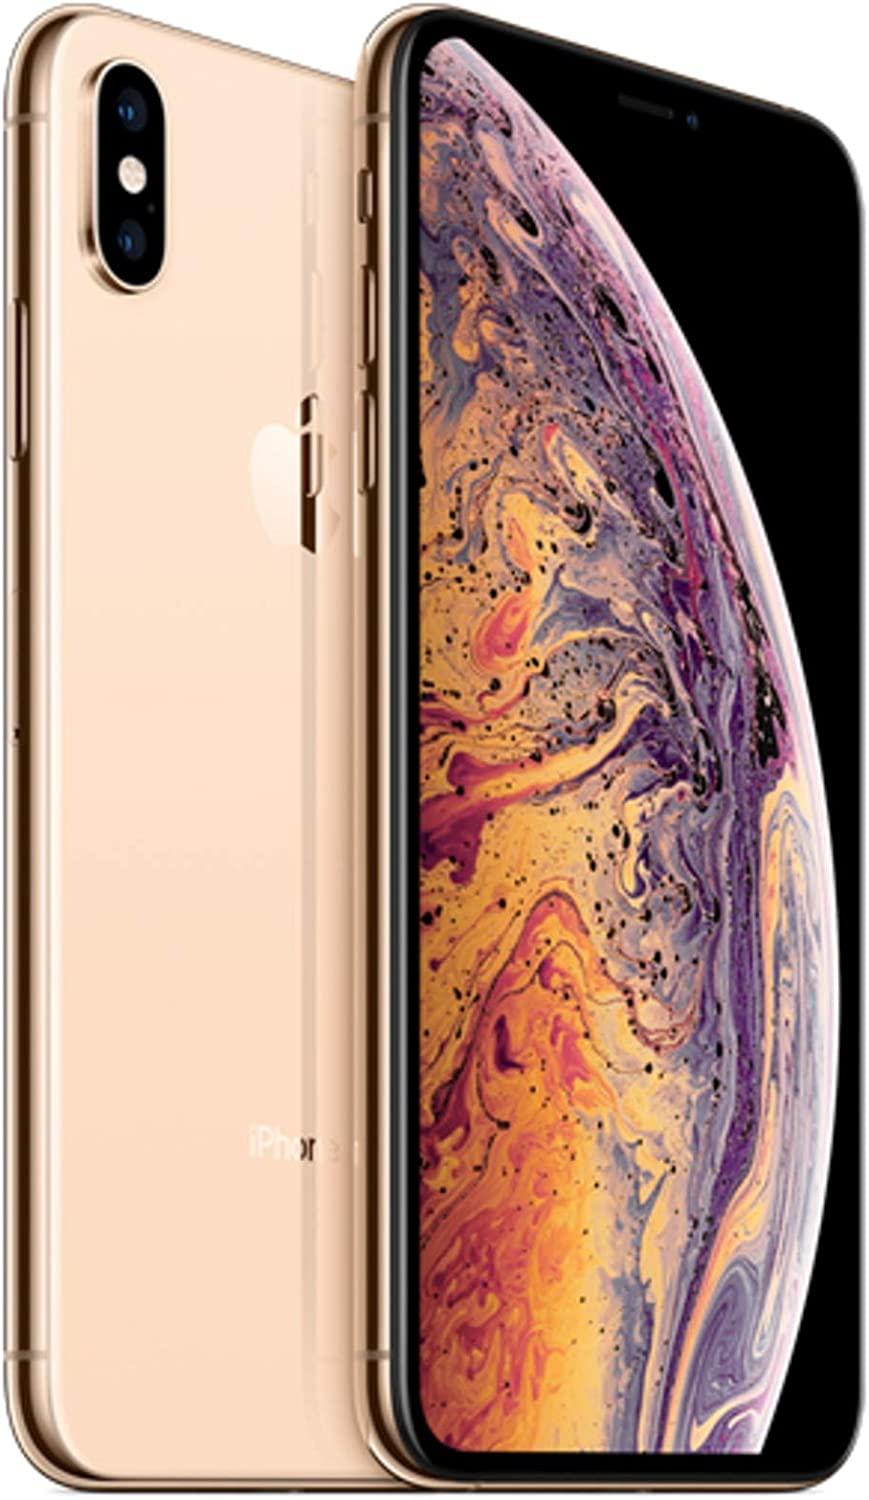 Apple iPhone Xs Max, 512GB, Gold - Fully Unlocked (Renewed)